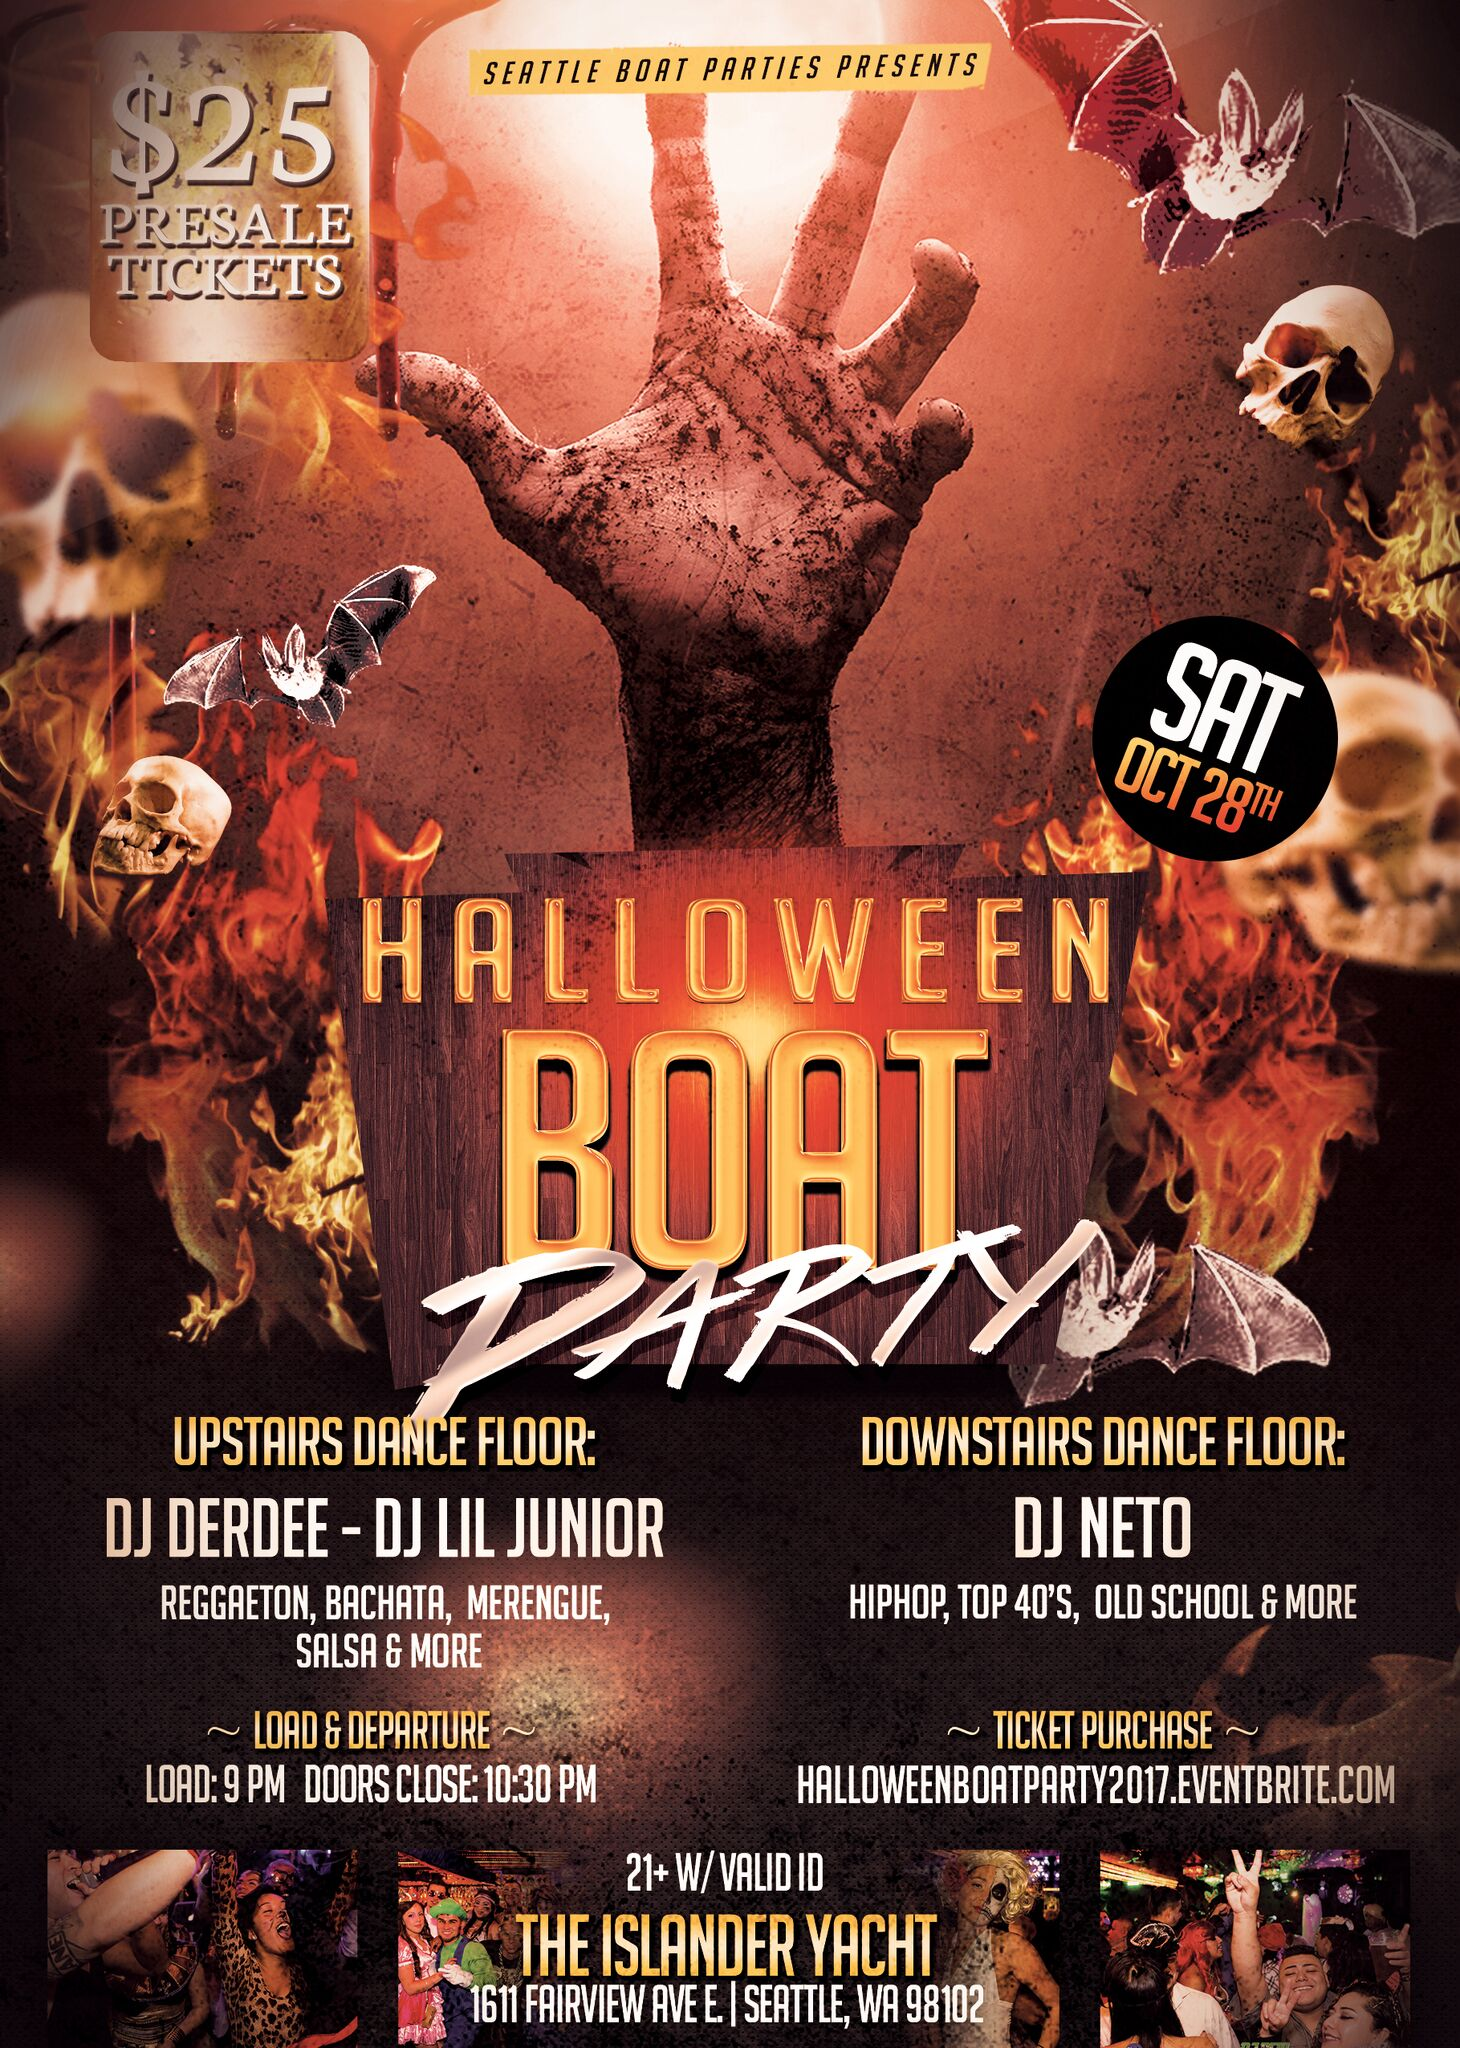 HALLOWEEN BOAT PARTY 2017 Tickets, Sat, Oct 28, 2017 at 9:00 PM ...